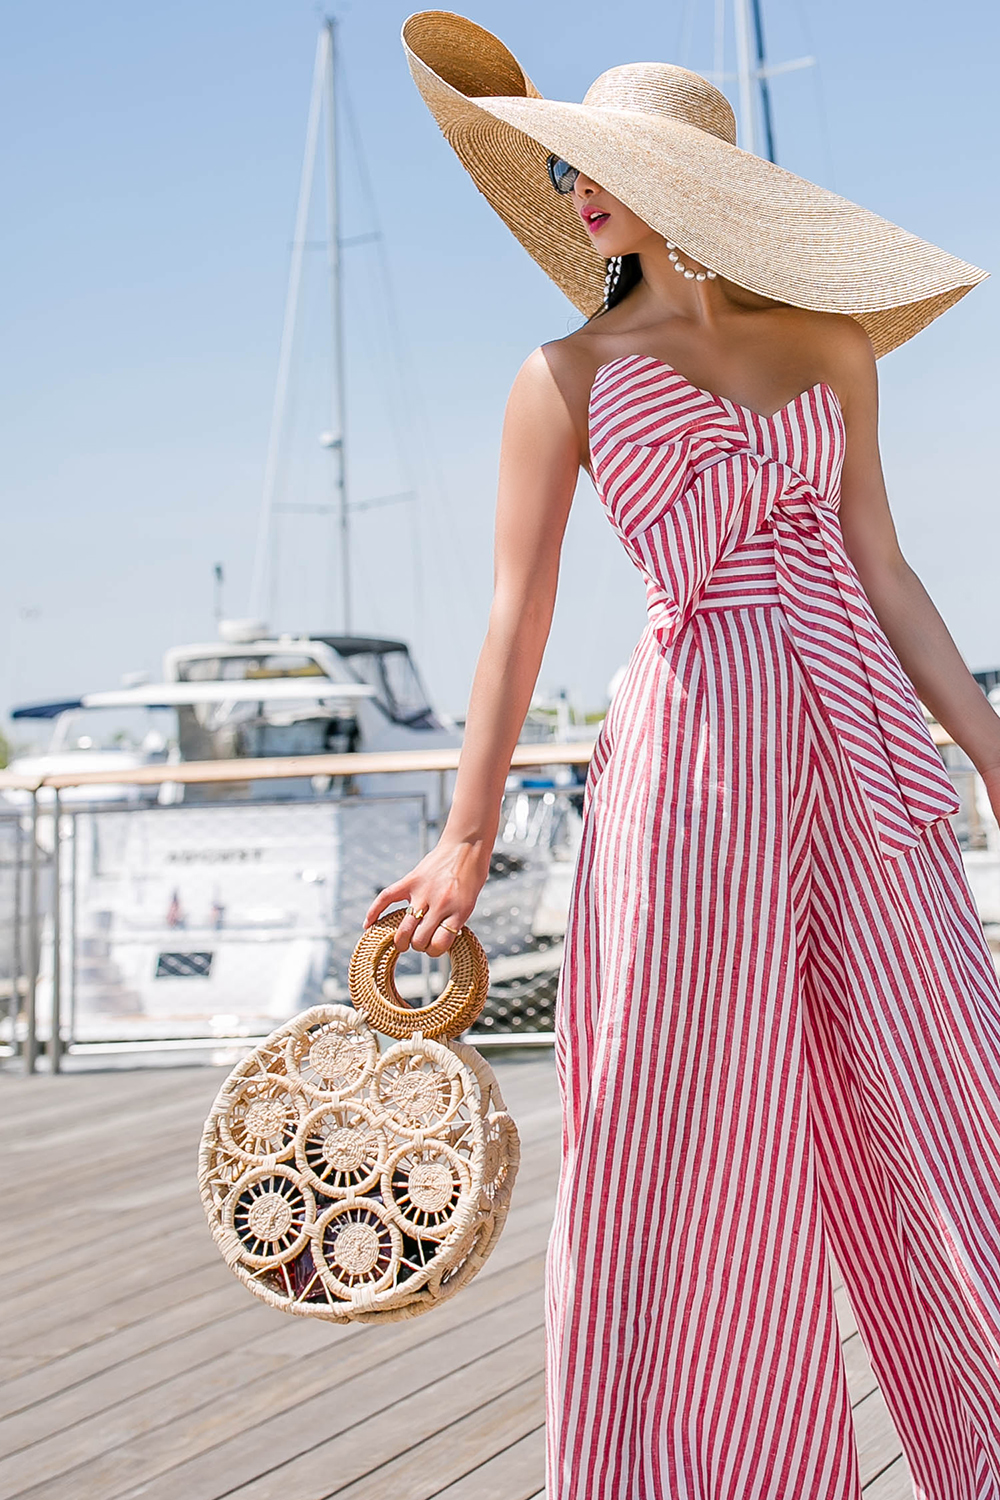 Cult-Gaia-cirlce-straw-bag-2.jpg